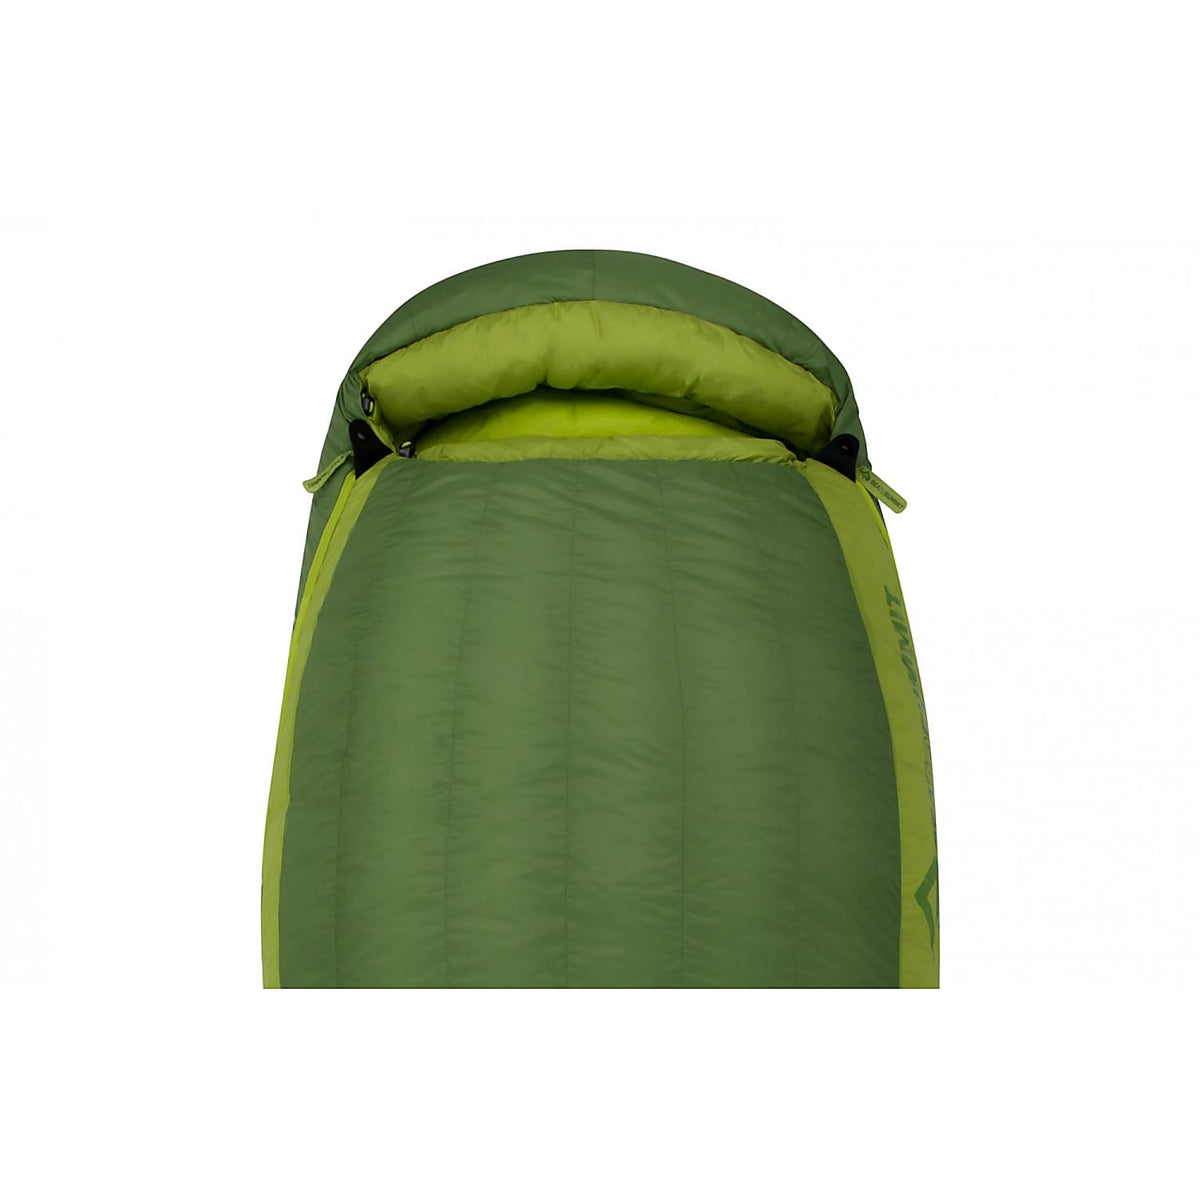 Sea to Summit Ascent III sleeping bag, showing the head end